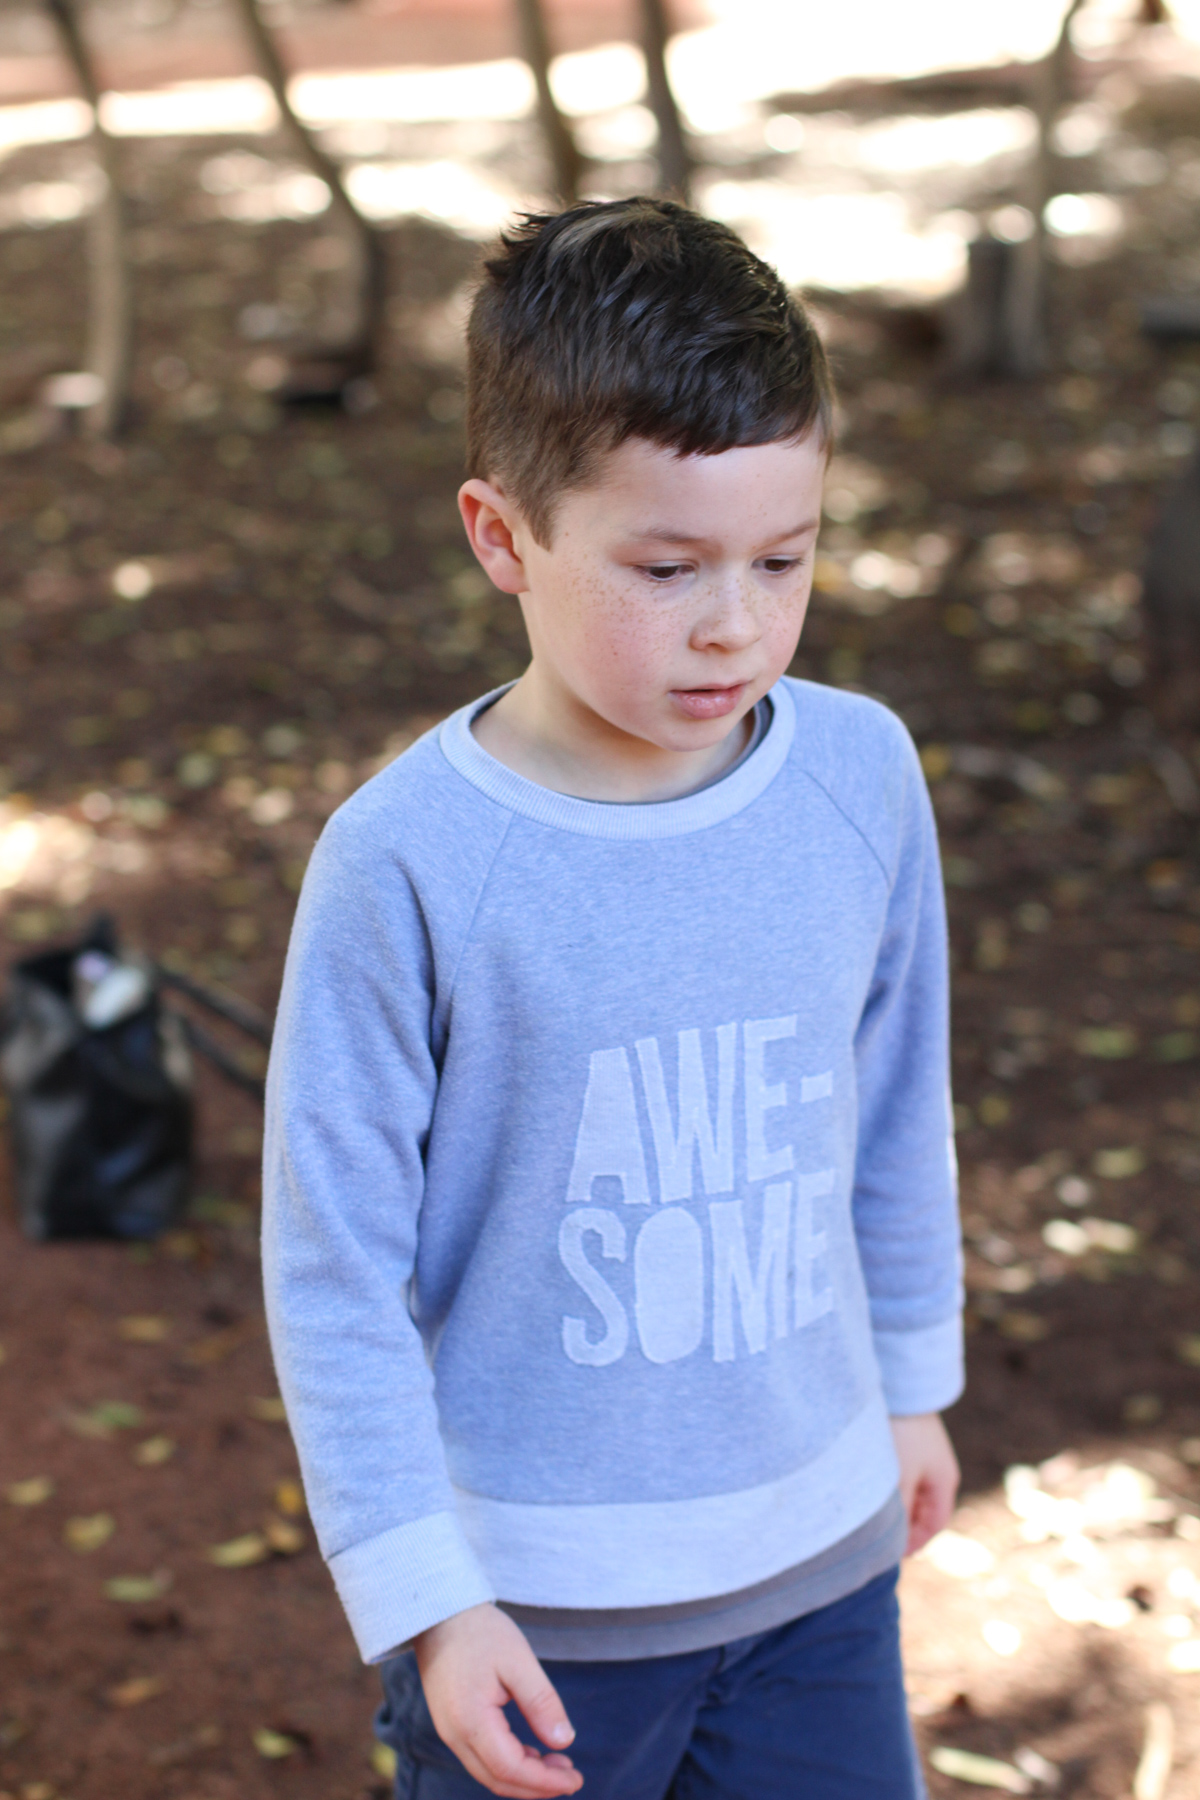 Buddy's awesome sweatshirt using Simplicity 5591